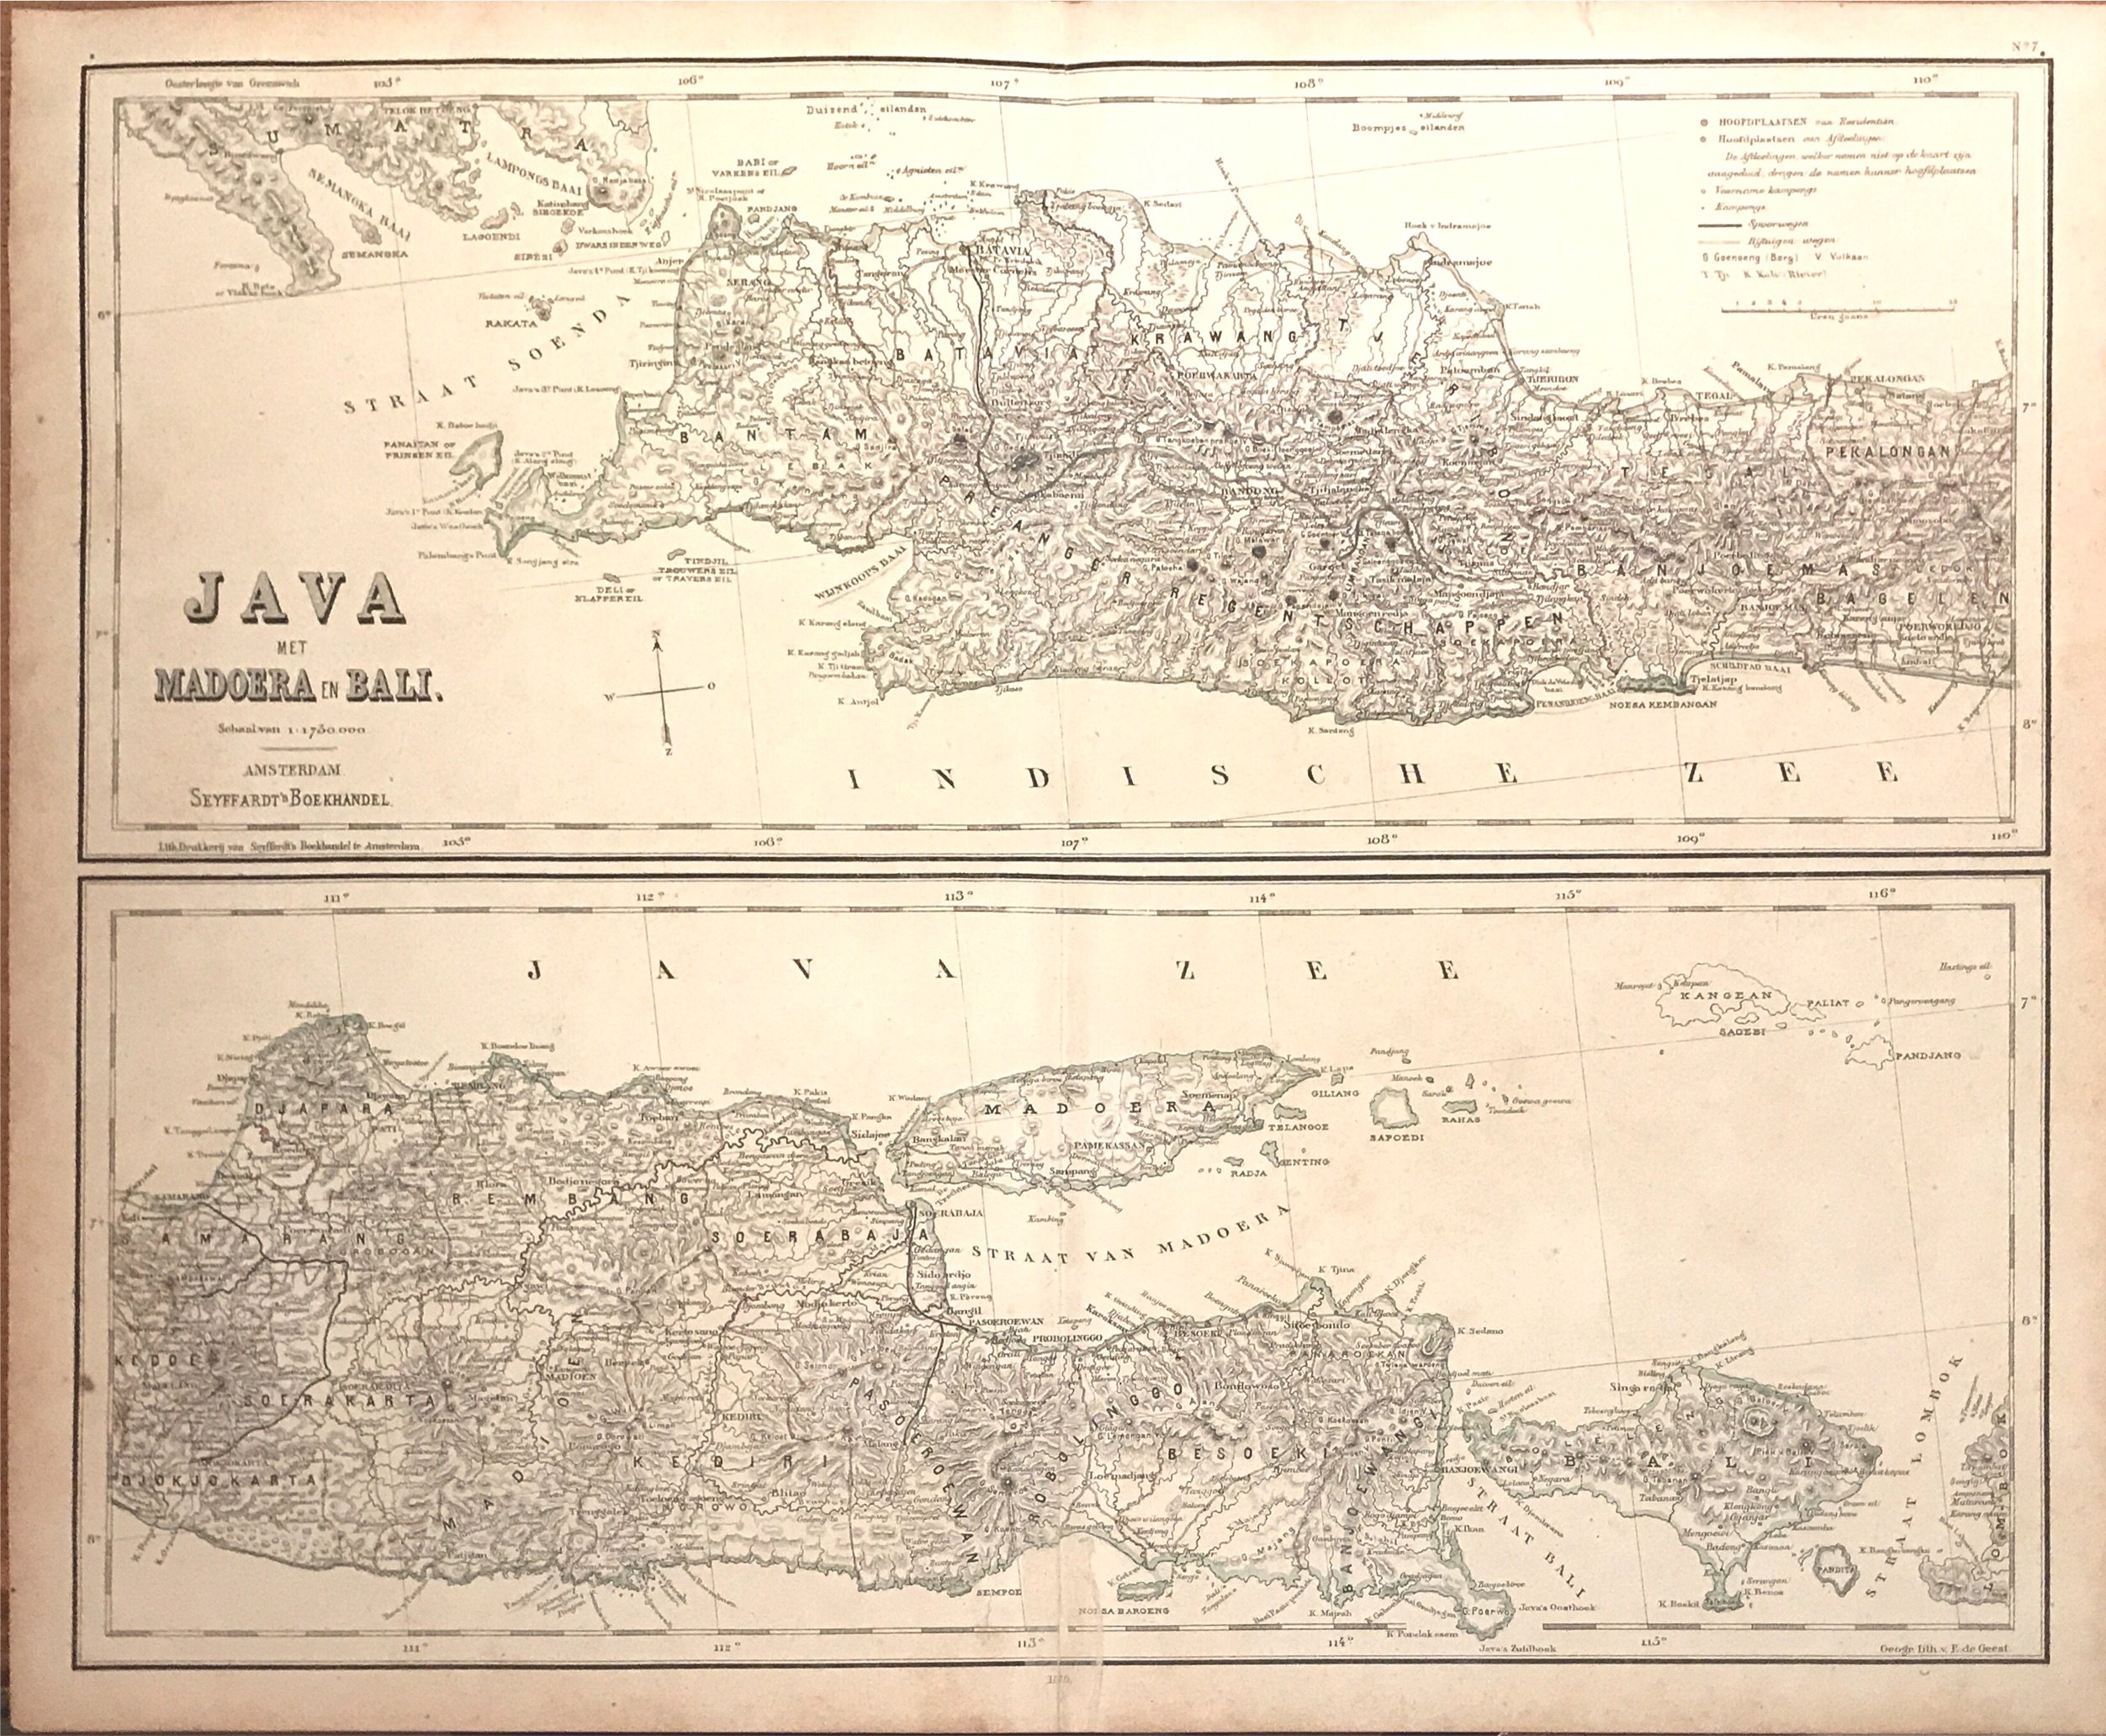 Maps of Java, Madoera and Bali - Unknown (c.1879)